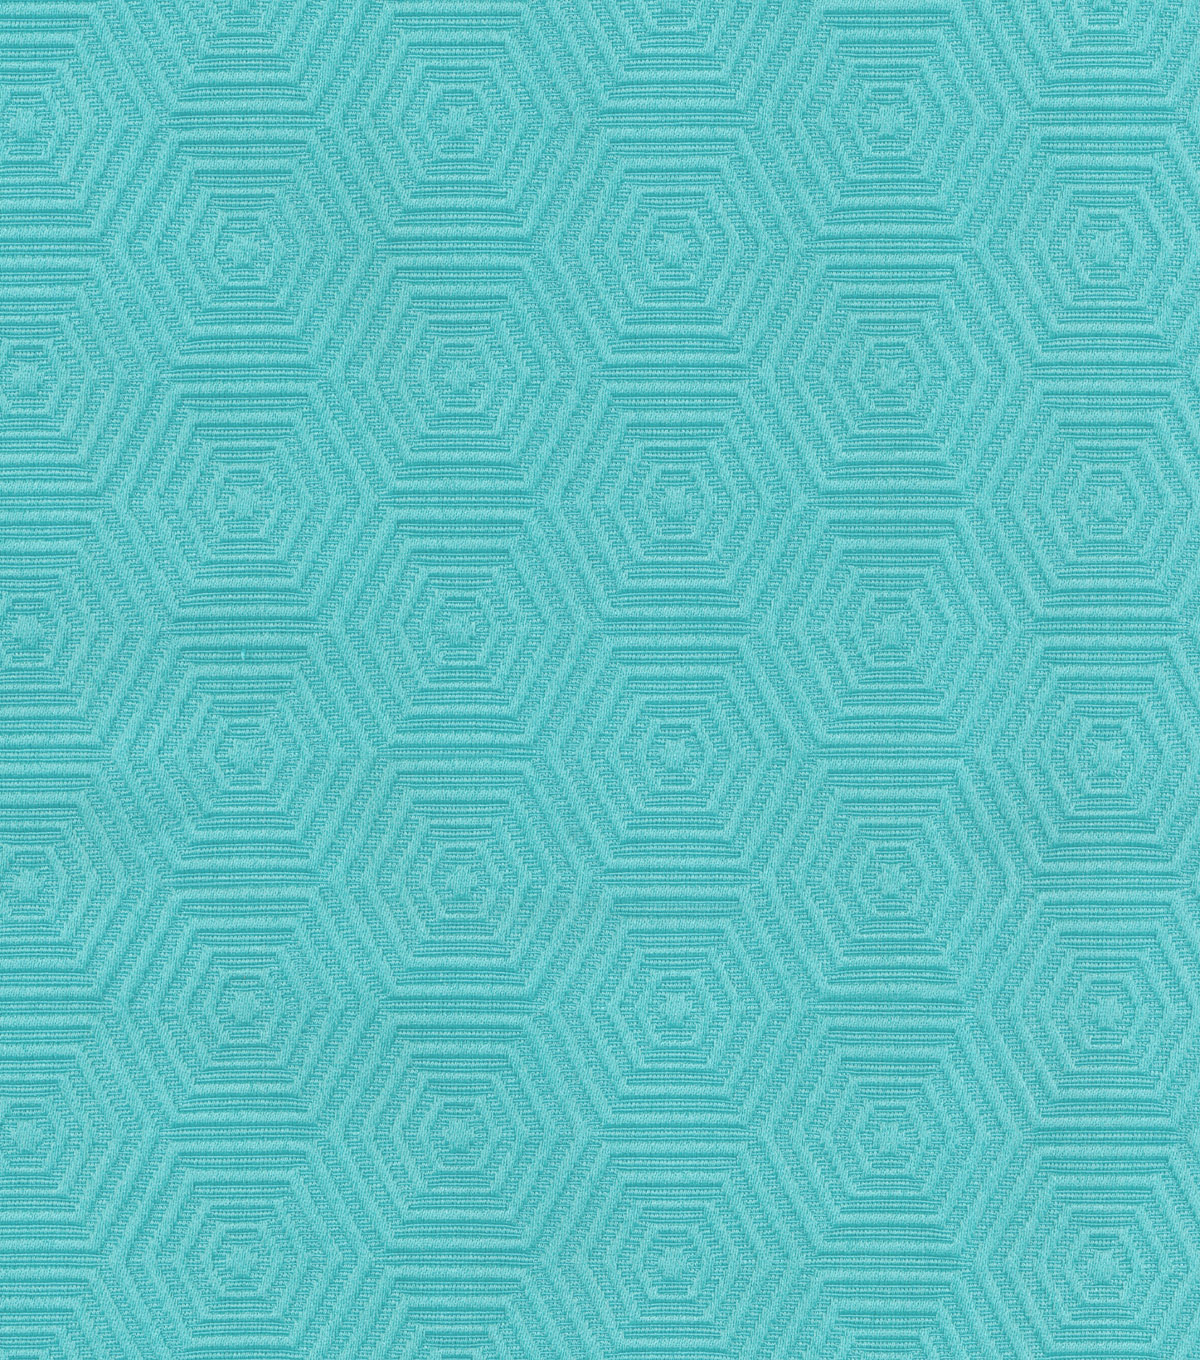 HGTV Home Lightweight Decor Fabric-Hex Appeal/Pool